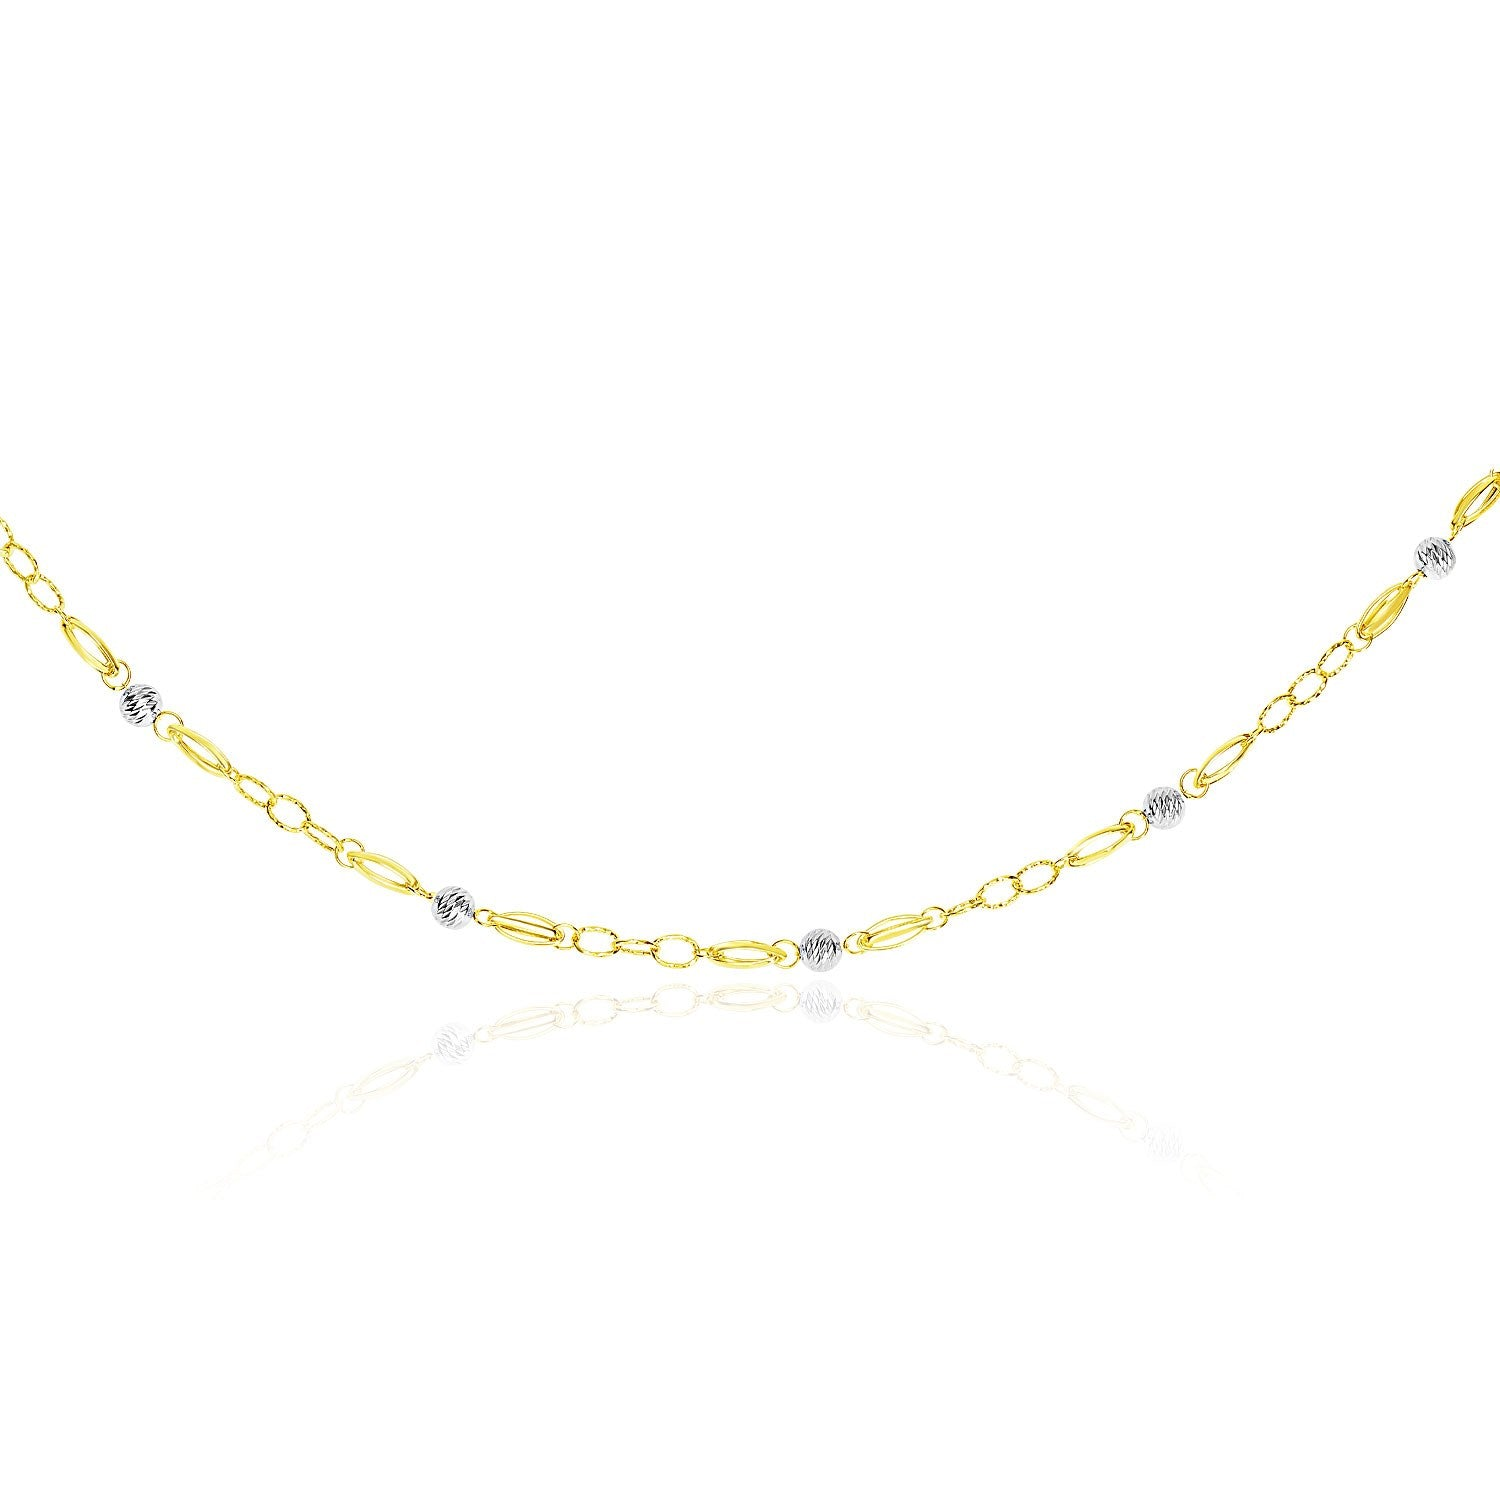 14K Two-Tone Gold Long Multi-Textured Necklace with Disc Sections